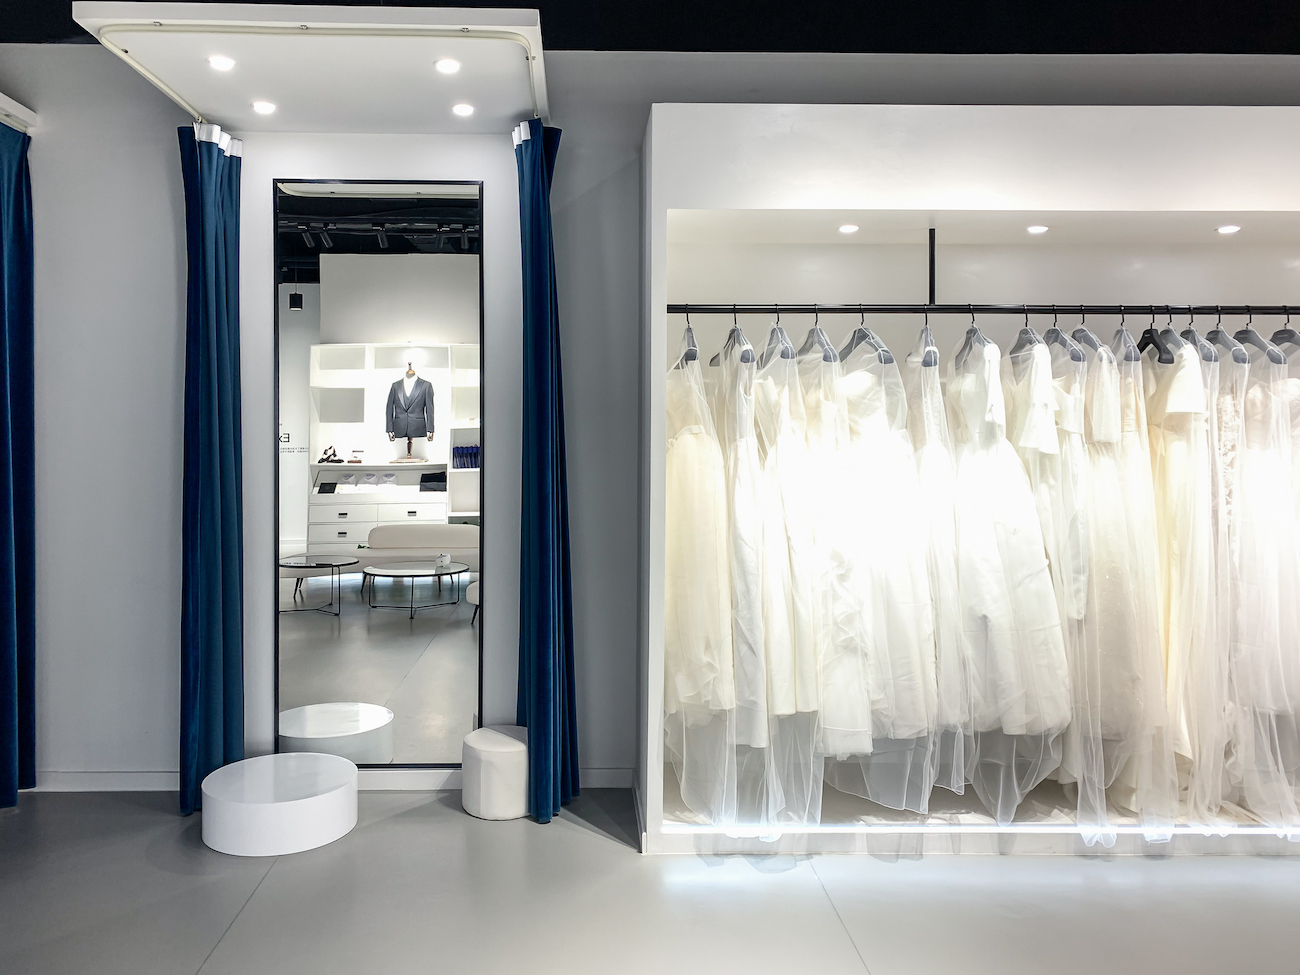 photo of a fitting room with a three-way mirror and a rack of dresses